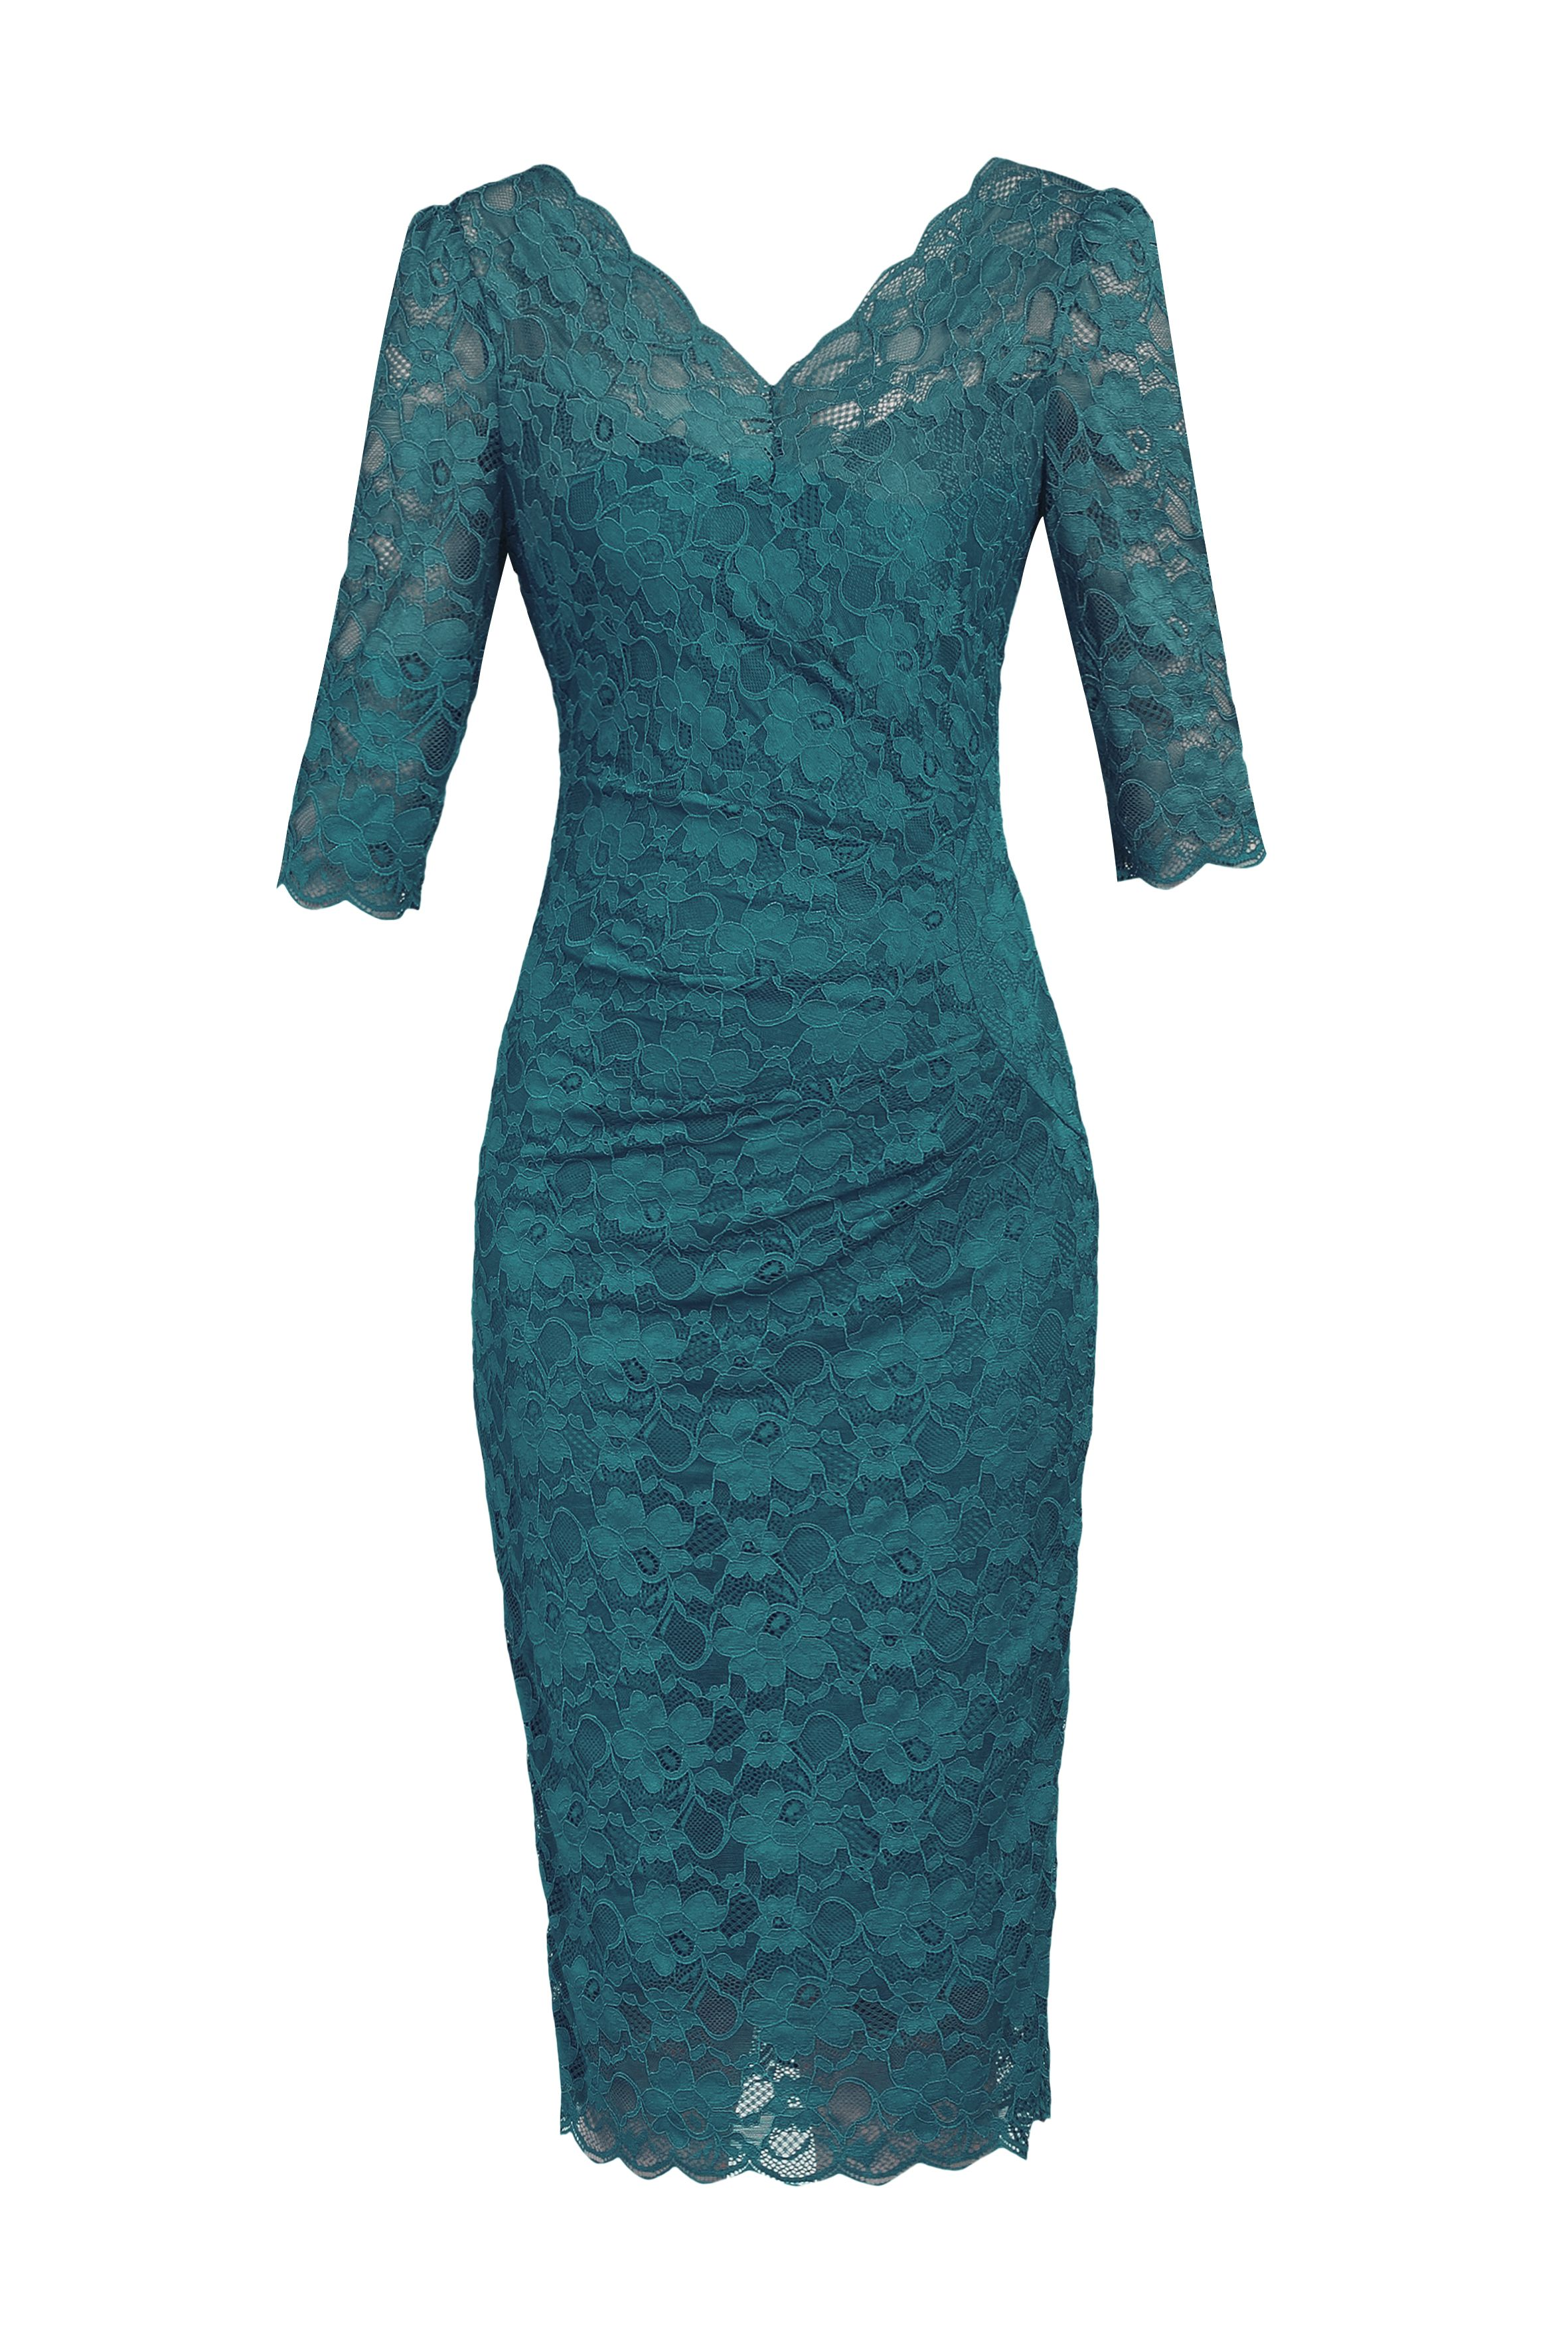 Jolie Moi 3/4 Sleeve V Neck Ruched Lace Dress, Teal